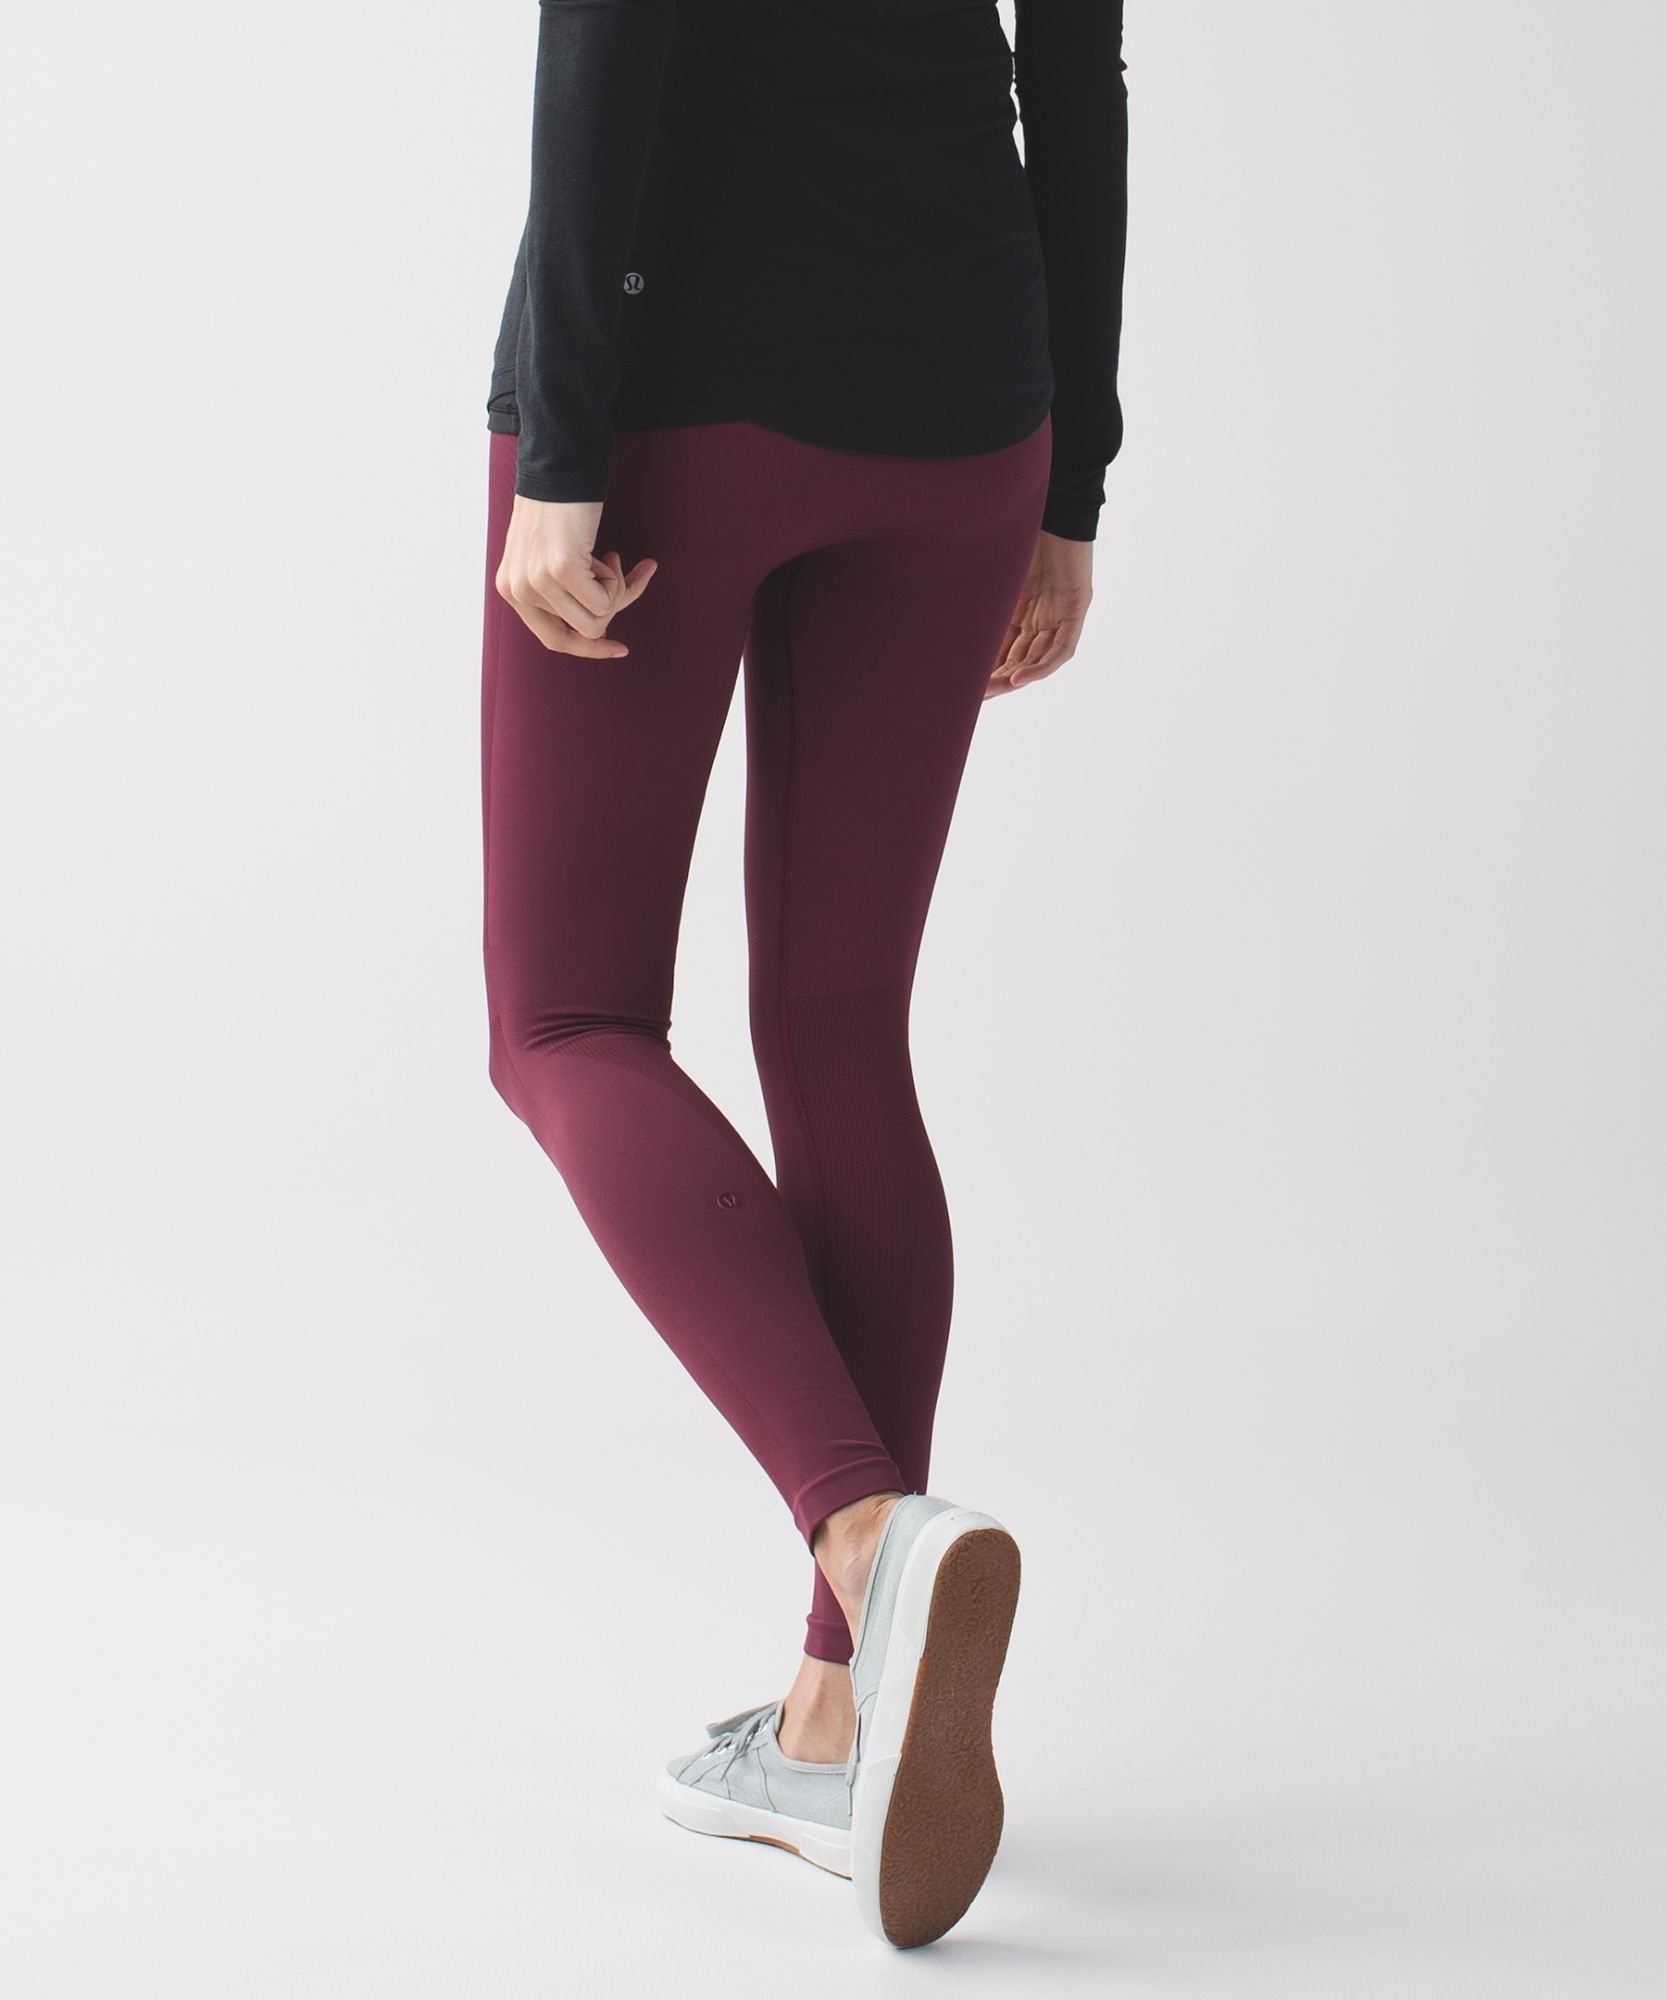 These yoga tights are engineered with zoned compression to keep you feeling held-in and supported in all the right places. Just grabbed on MD. Zone in Tights in wine berry